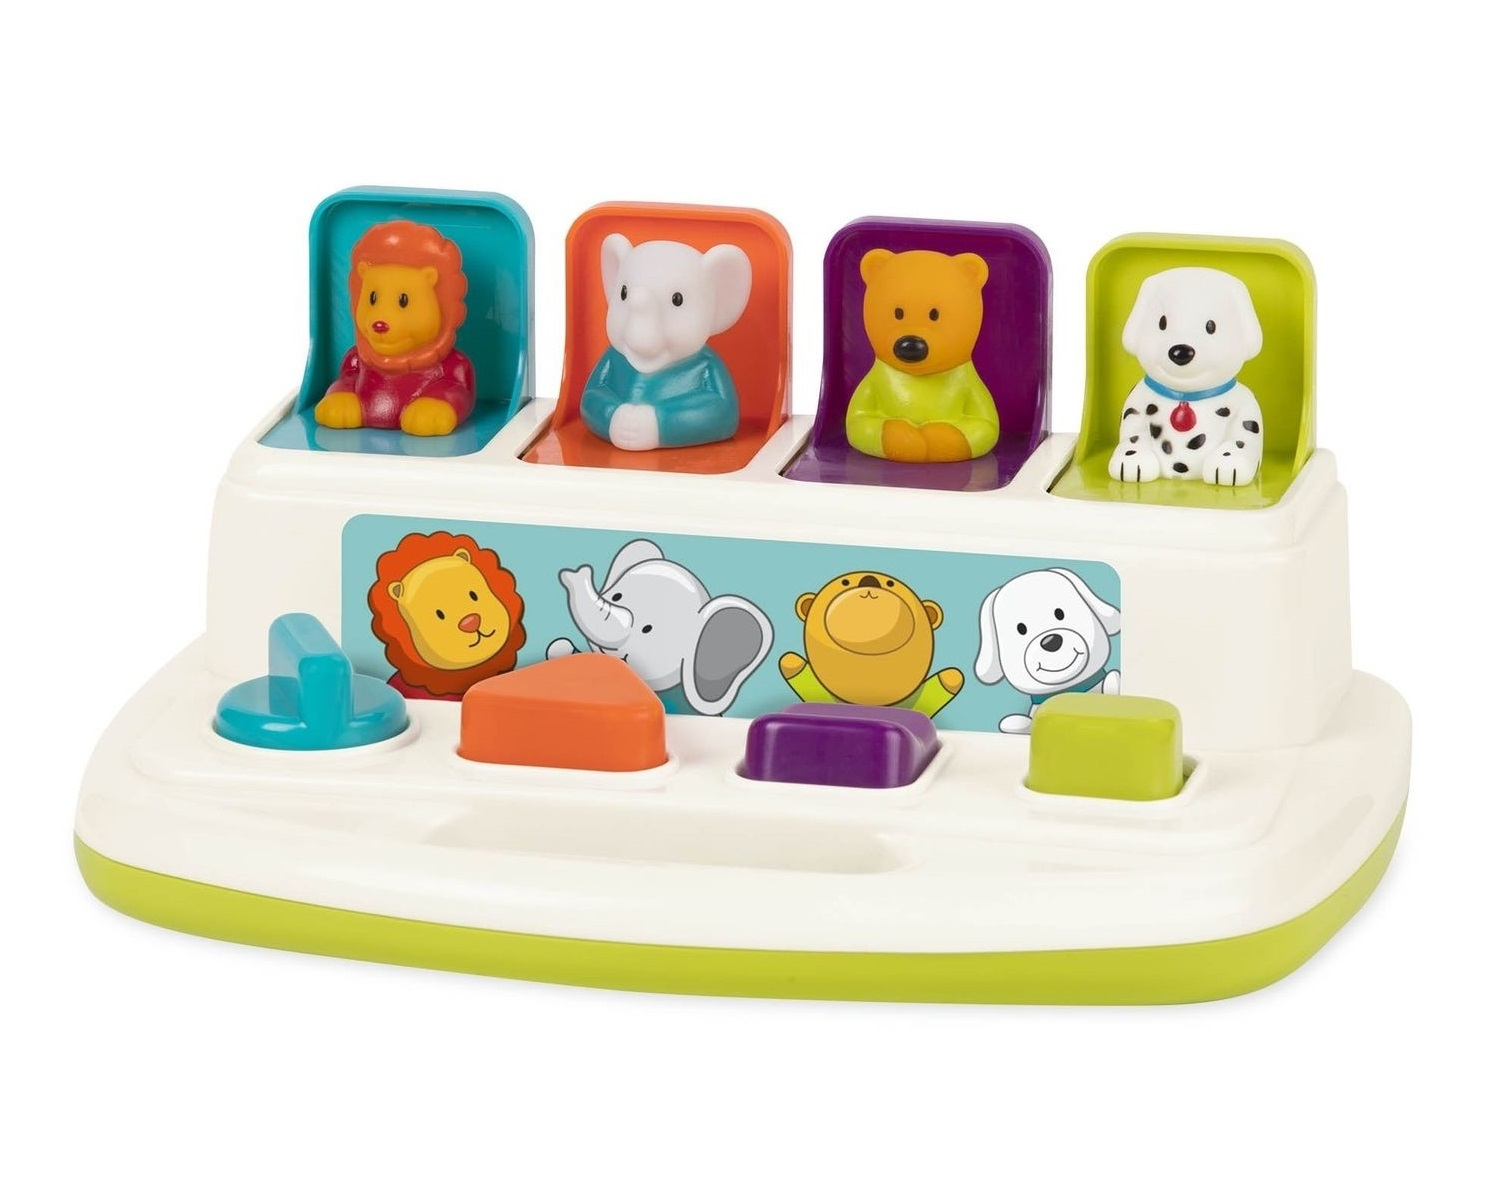 Battat: Pop-up Pals - Cause & Effect Learning Toy image